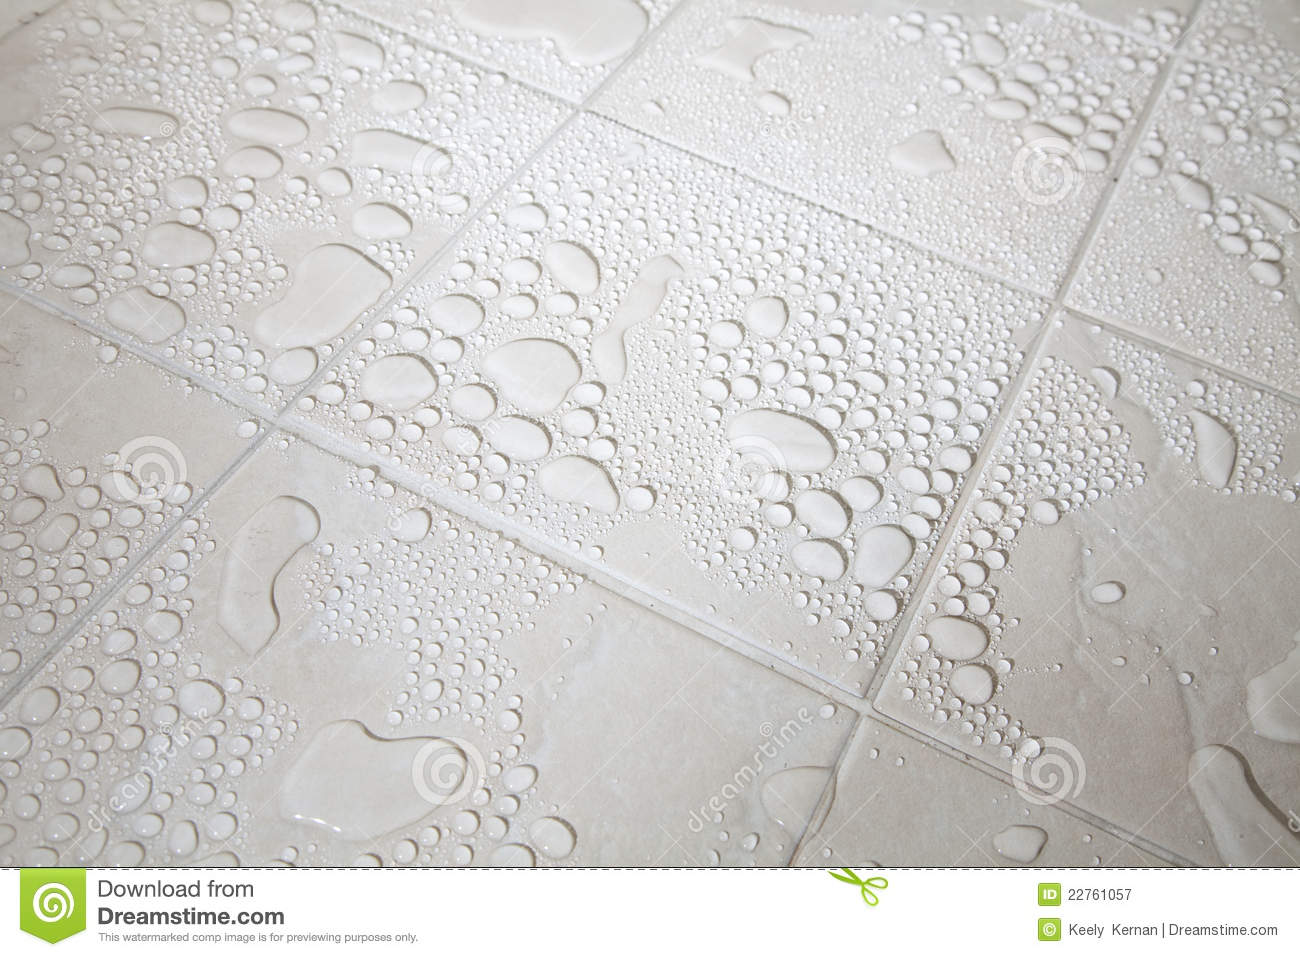 Tiled floor and water droplets stock image image of for On the floor on the floor